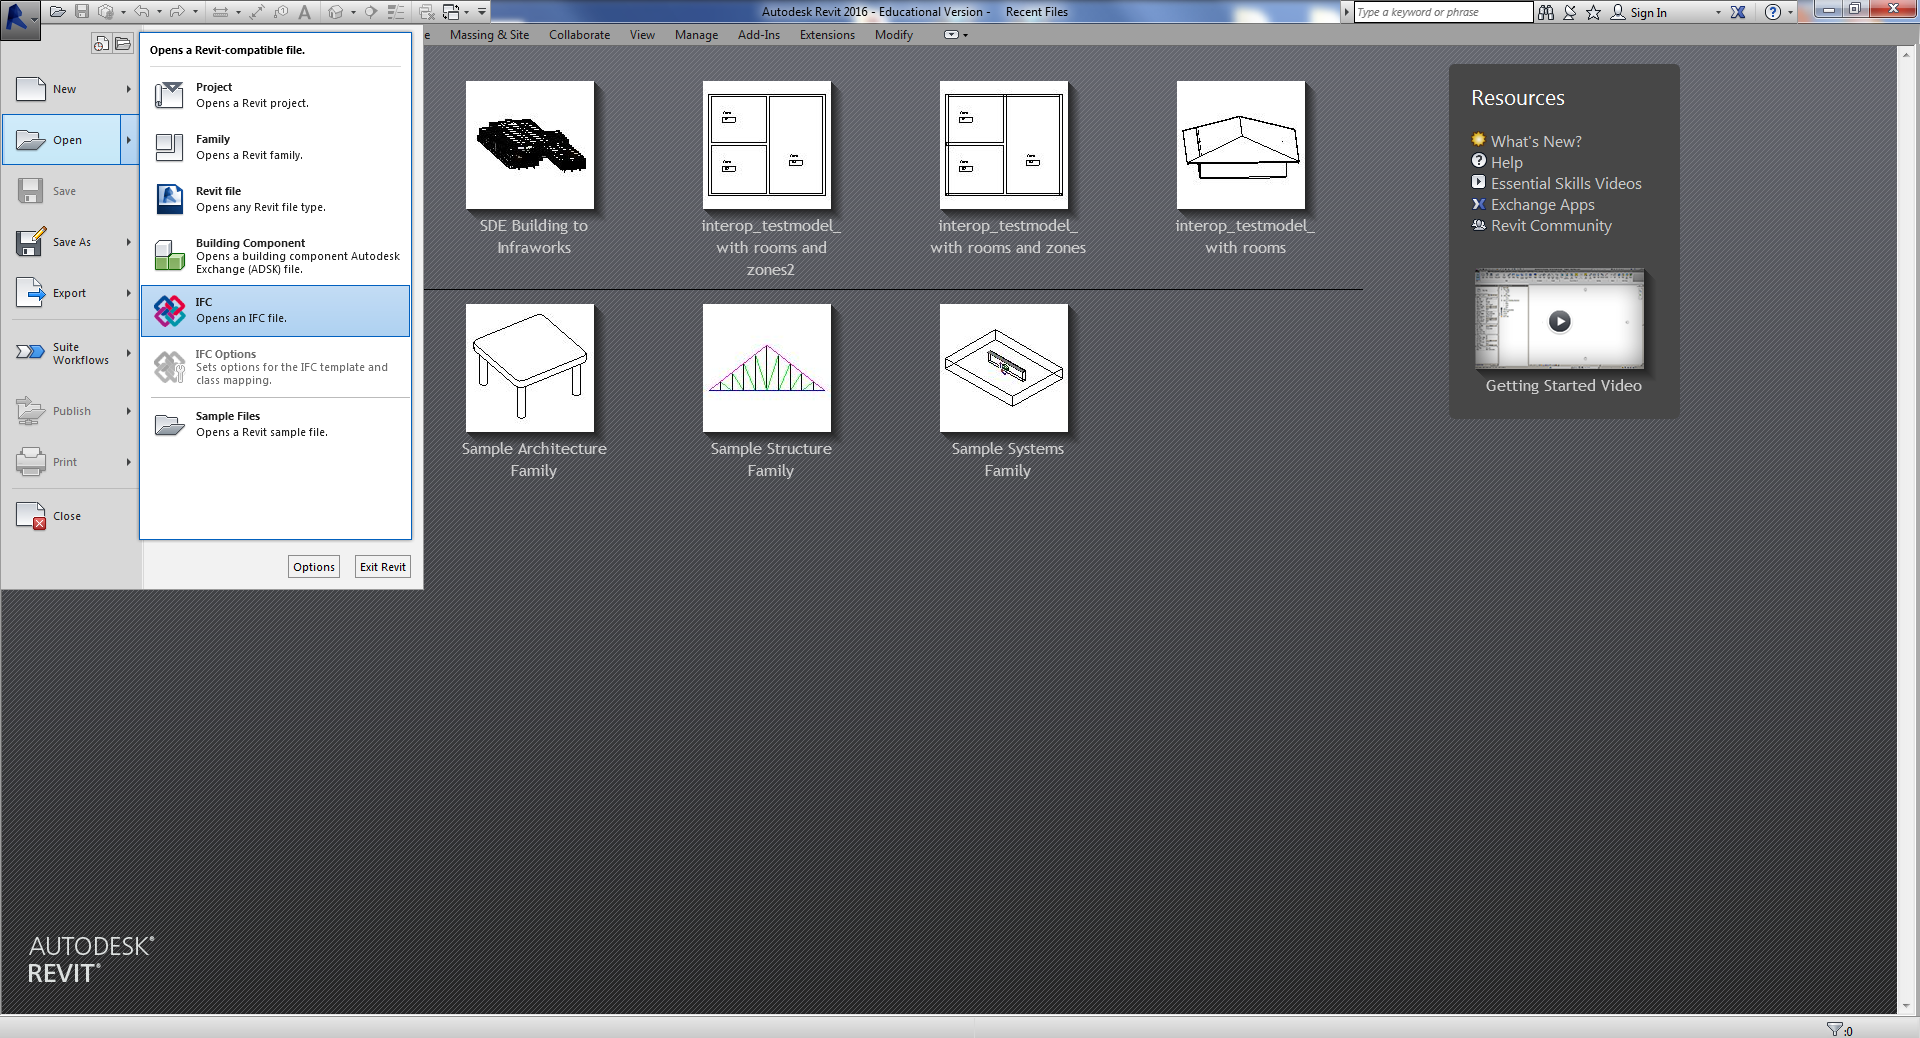 archicad instructions setting up model